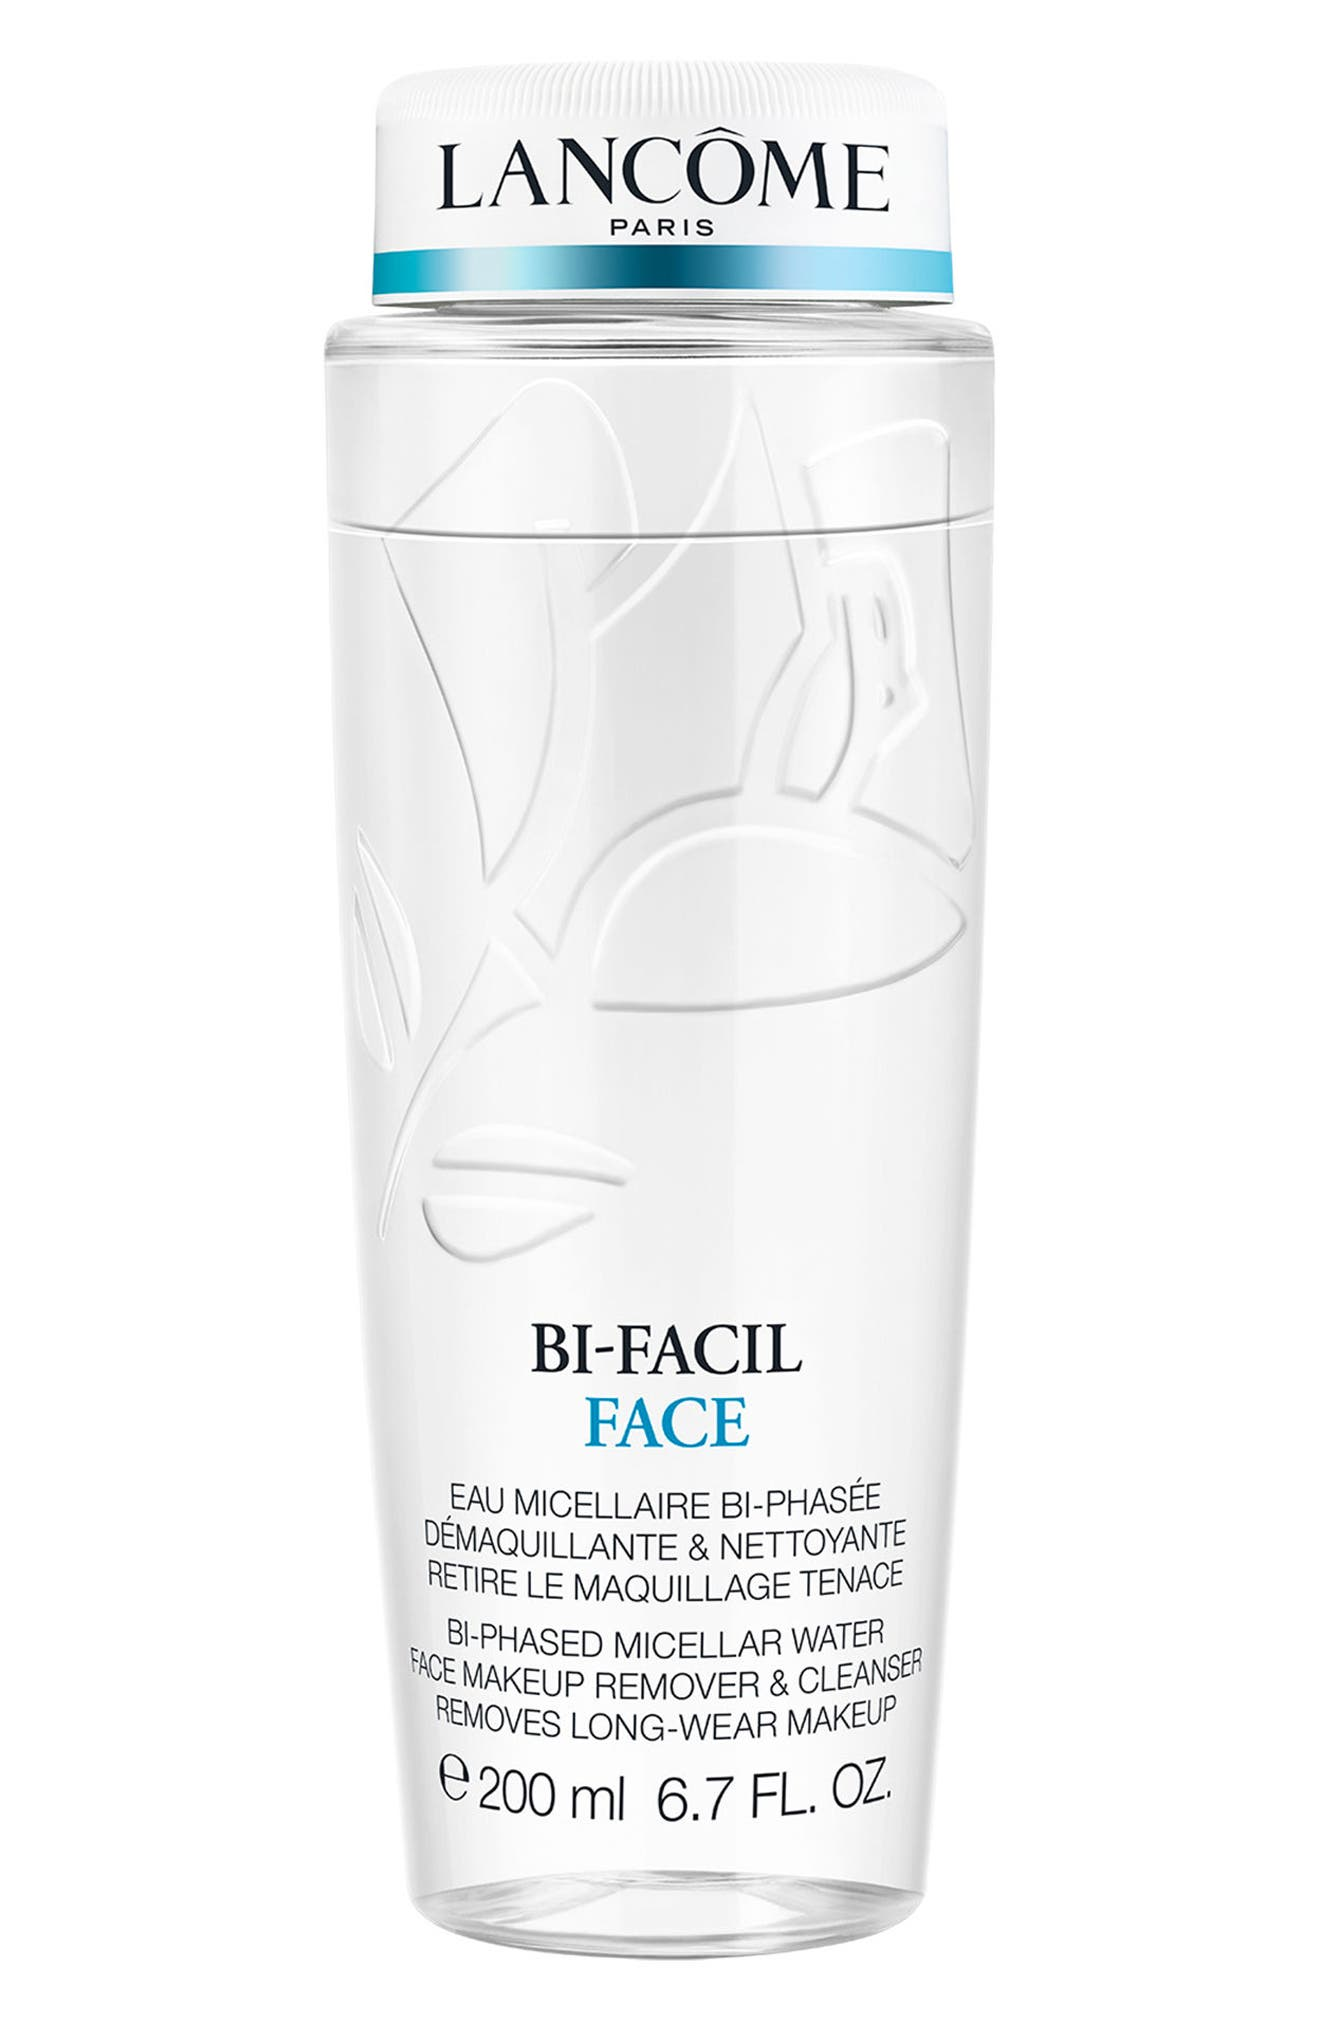 Lancôme Bi-Facil Face Bi-Phased Micellar Water